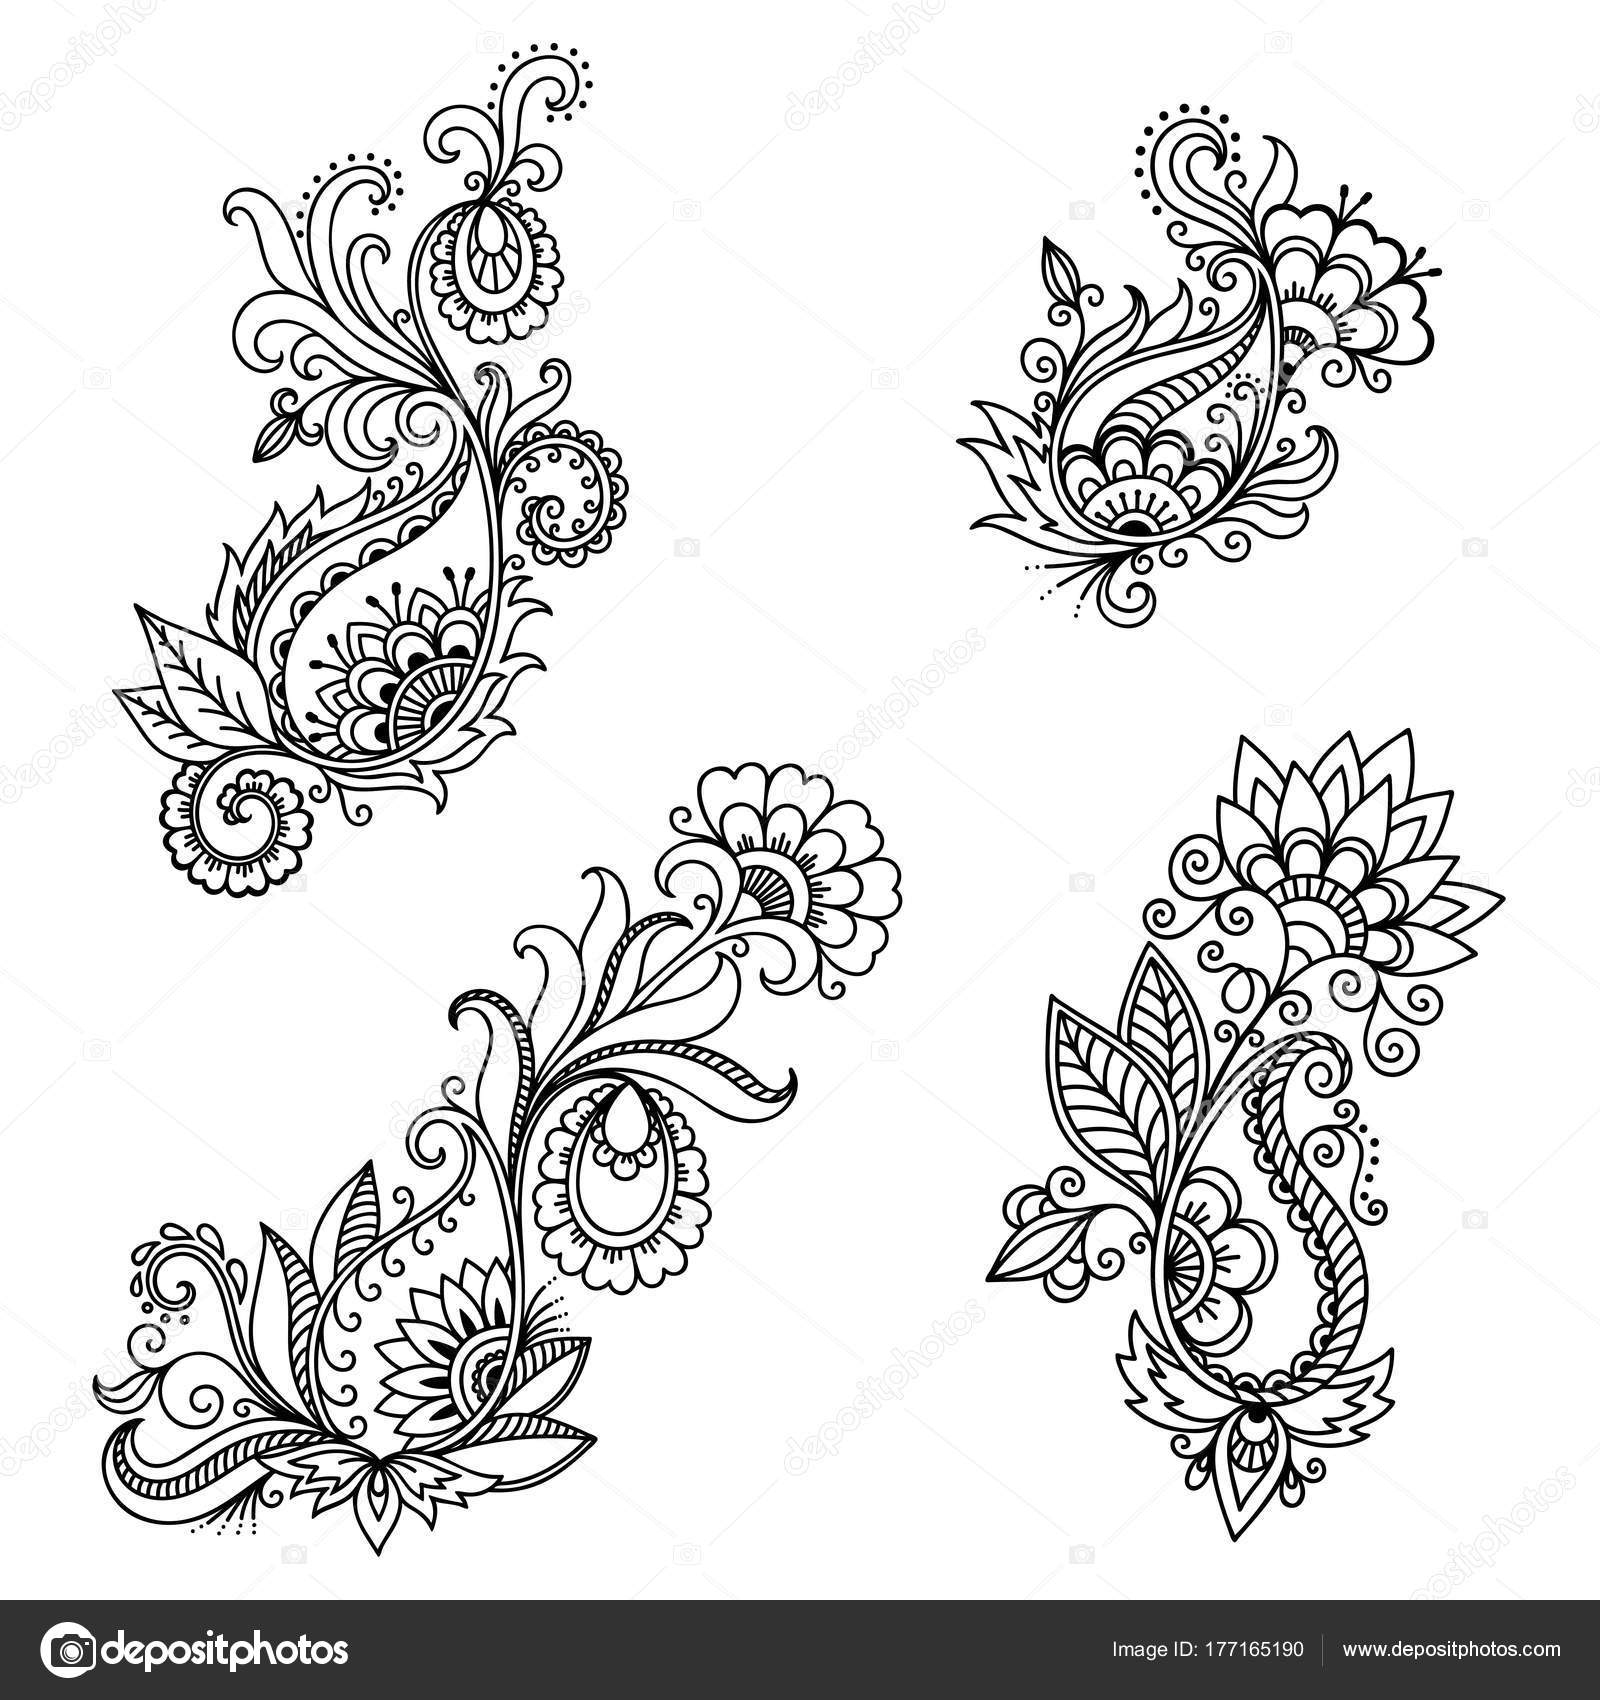 Henna tattoo flower template indian style ethnic floral paisley henna tattoo flower template indian style ethnic floral paisley lotus stock vector izmirmasajfo Image collections